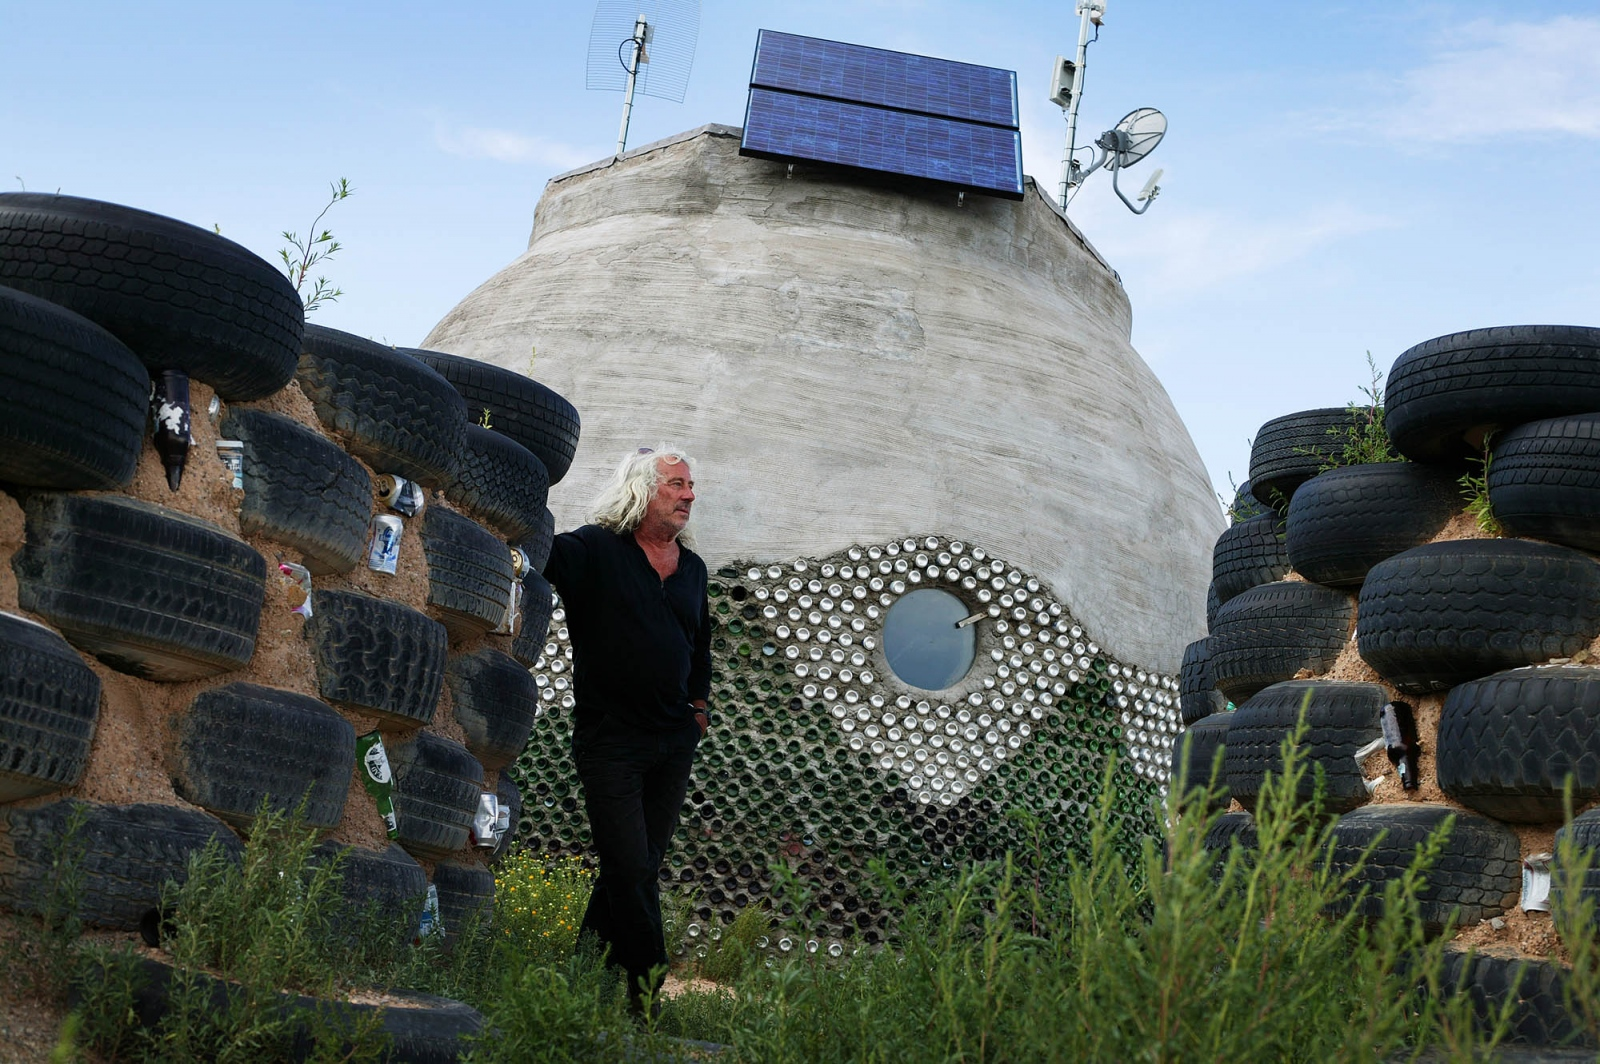 Eco Architect Michael Reynolds with one of his off-the-grid Earthship homes, made of recycled tires.